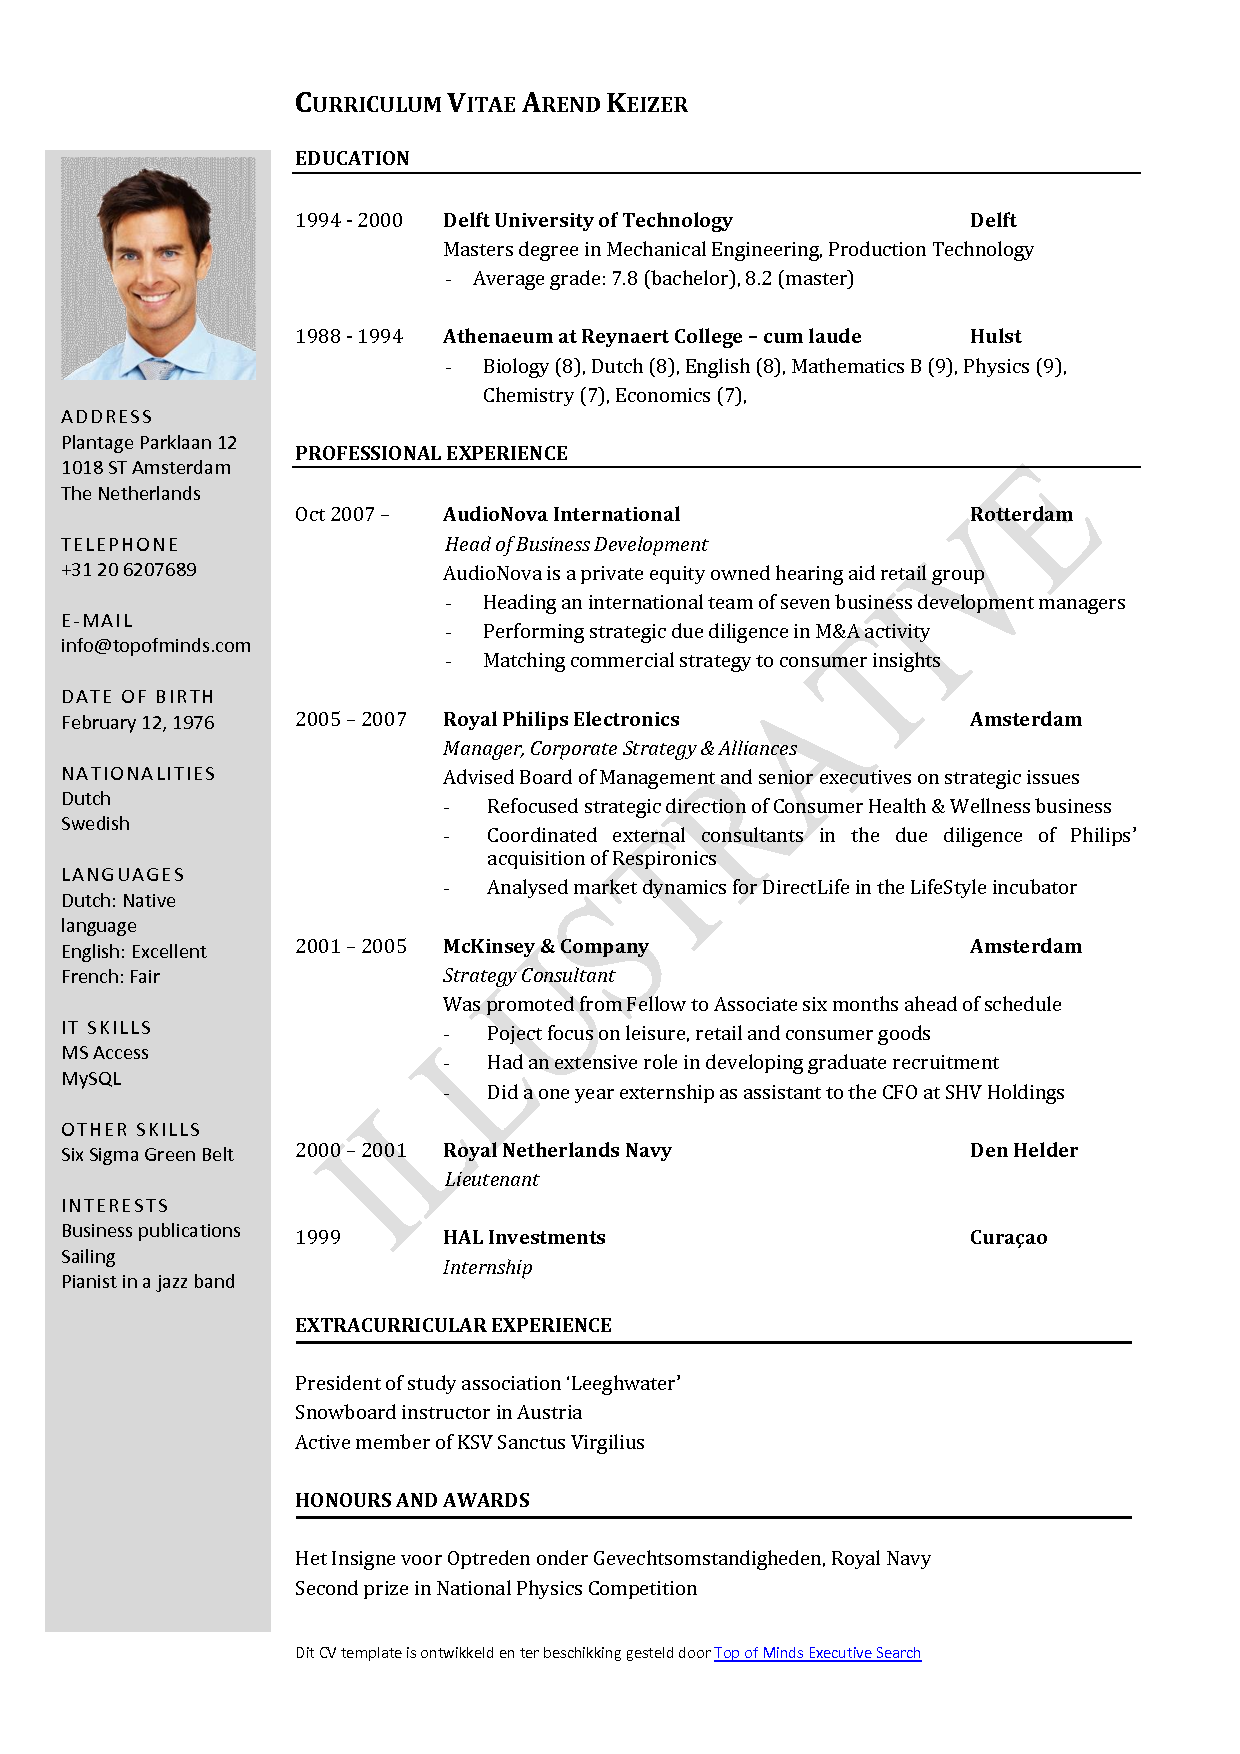 Free Curriculum Vitae Template Word | Download CV template | Resumes ...